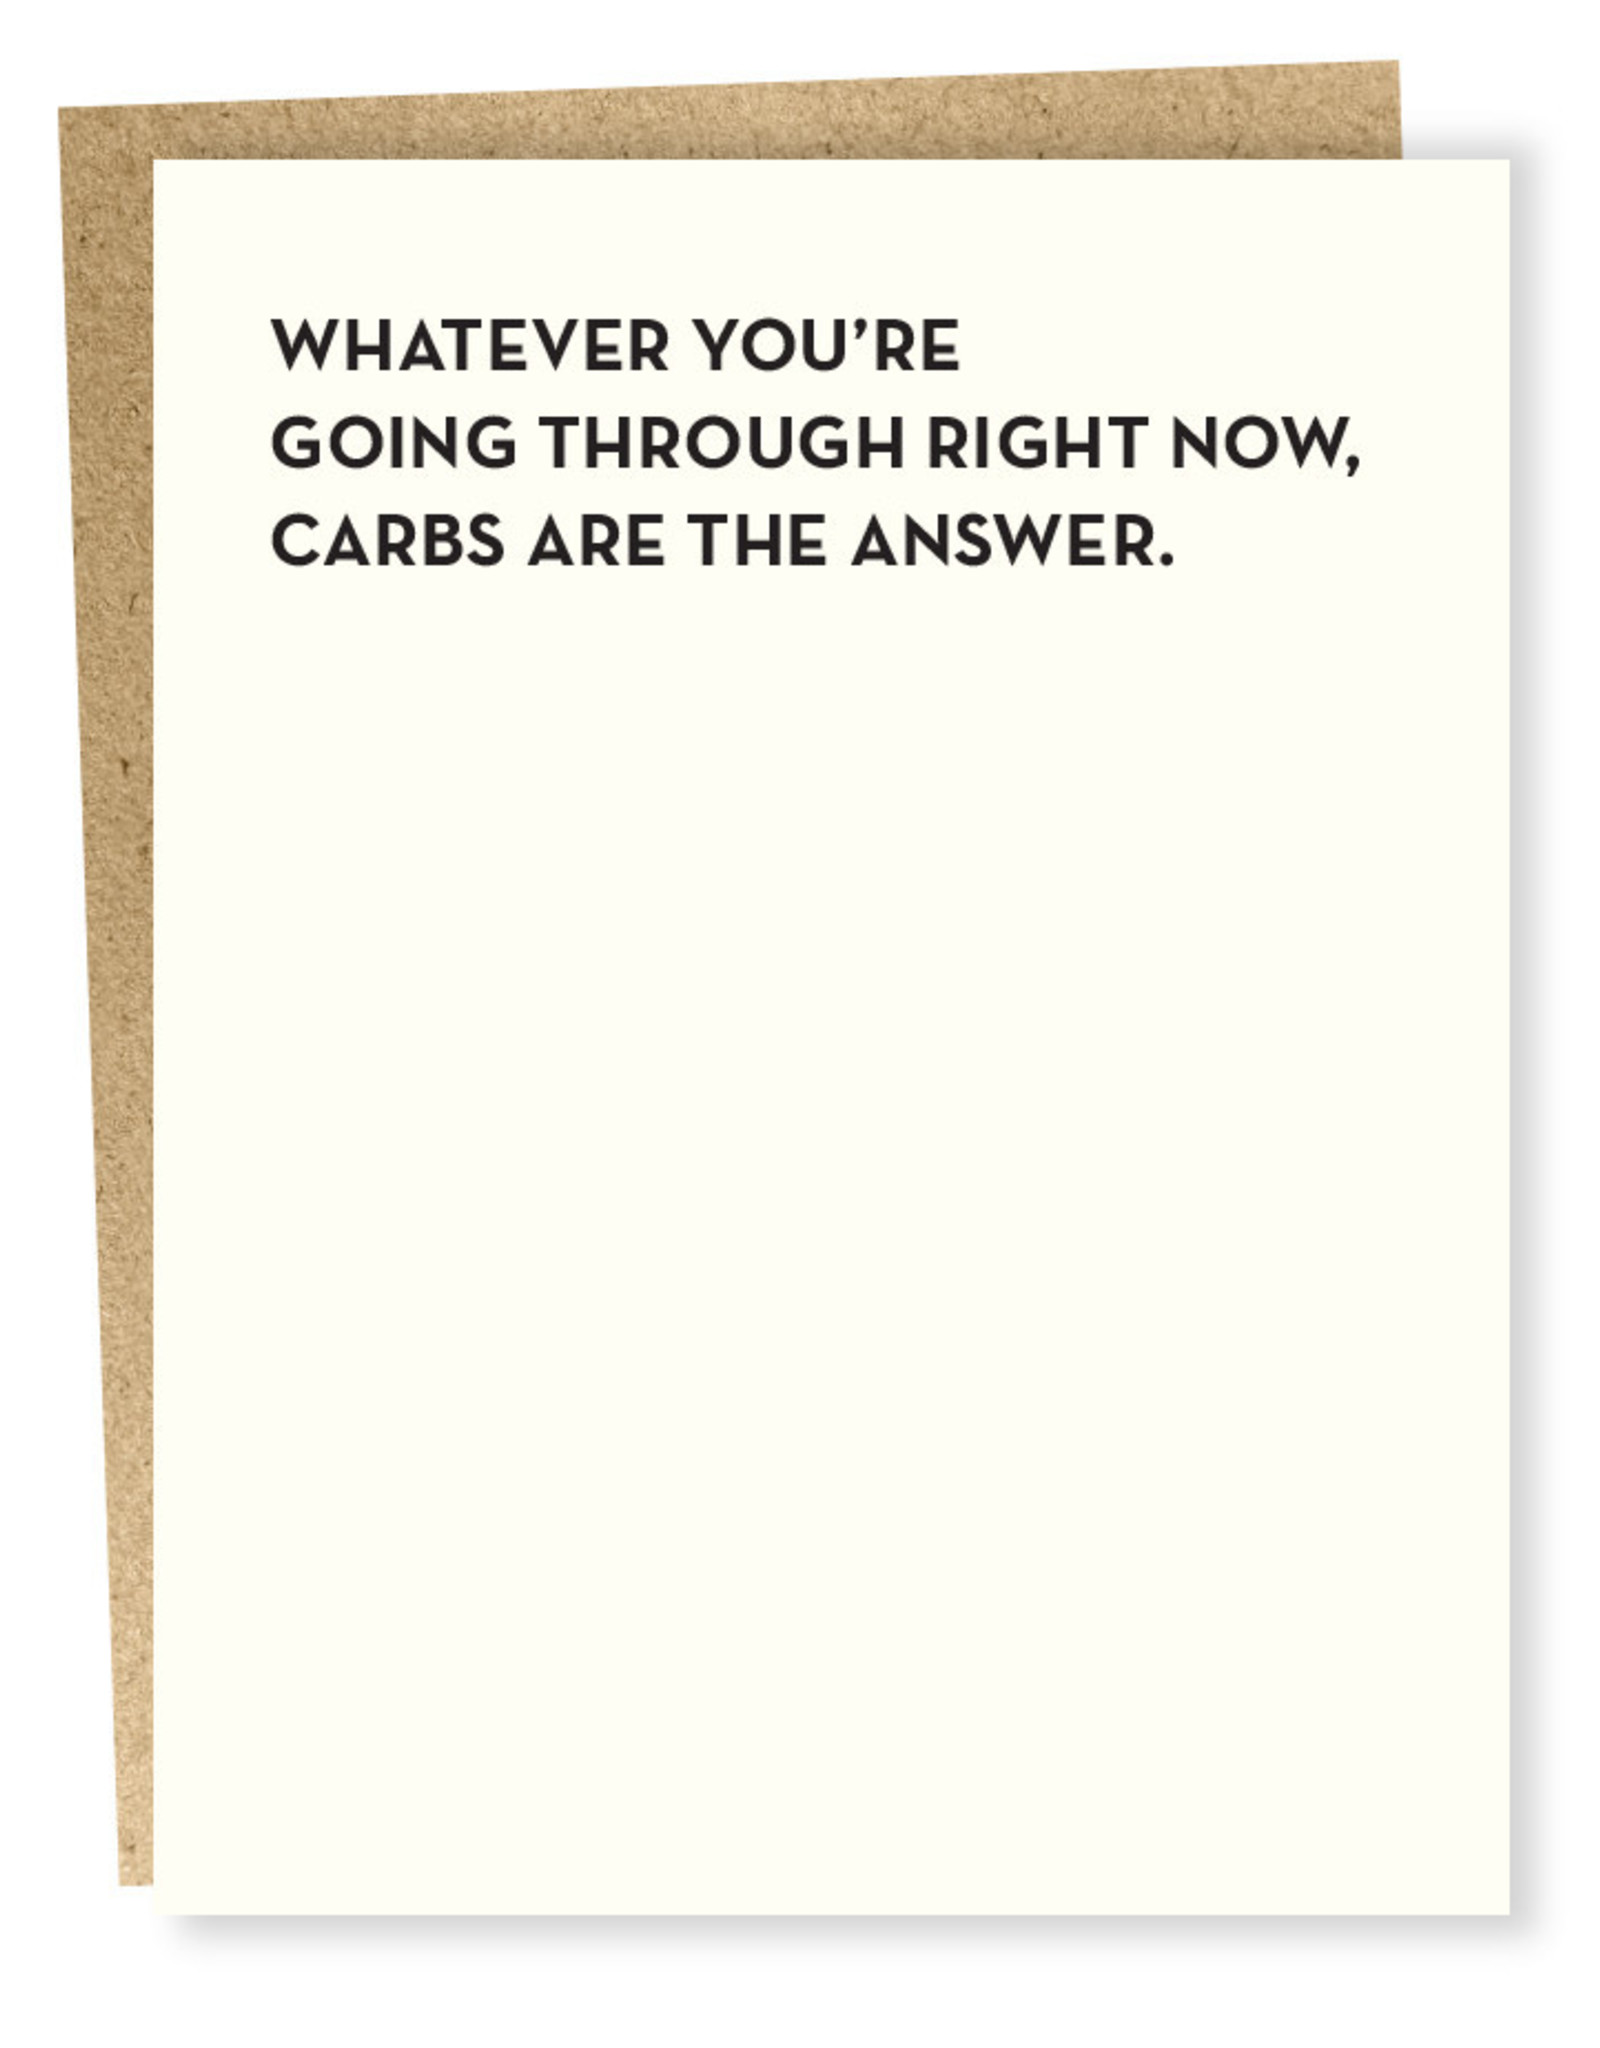 Card #919 - Carbs Are The Answer